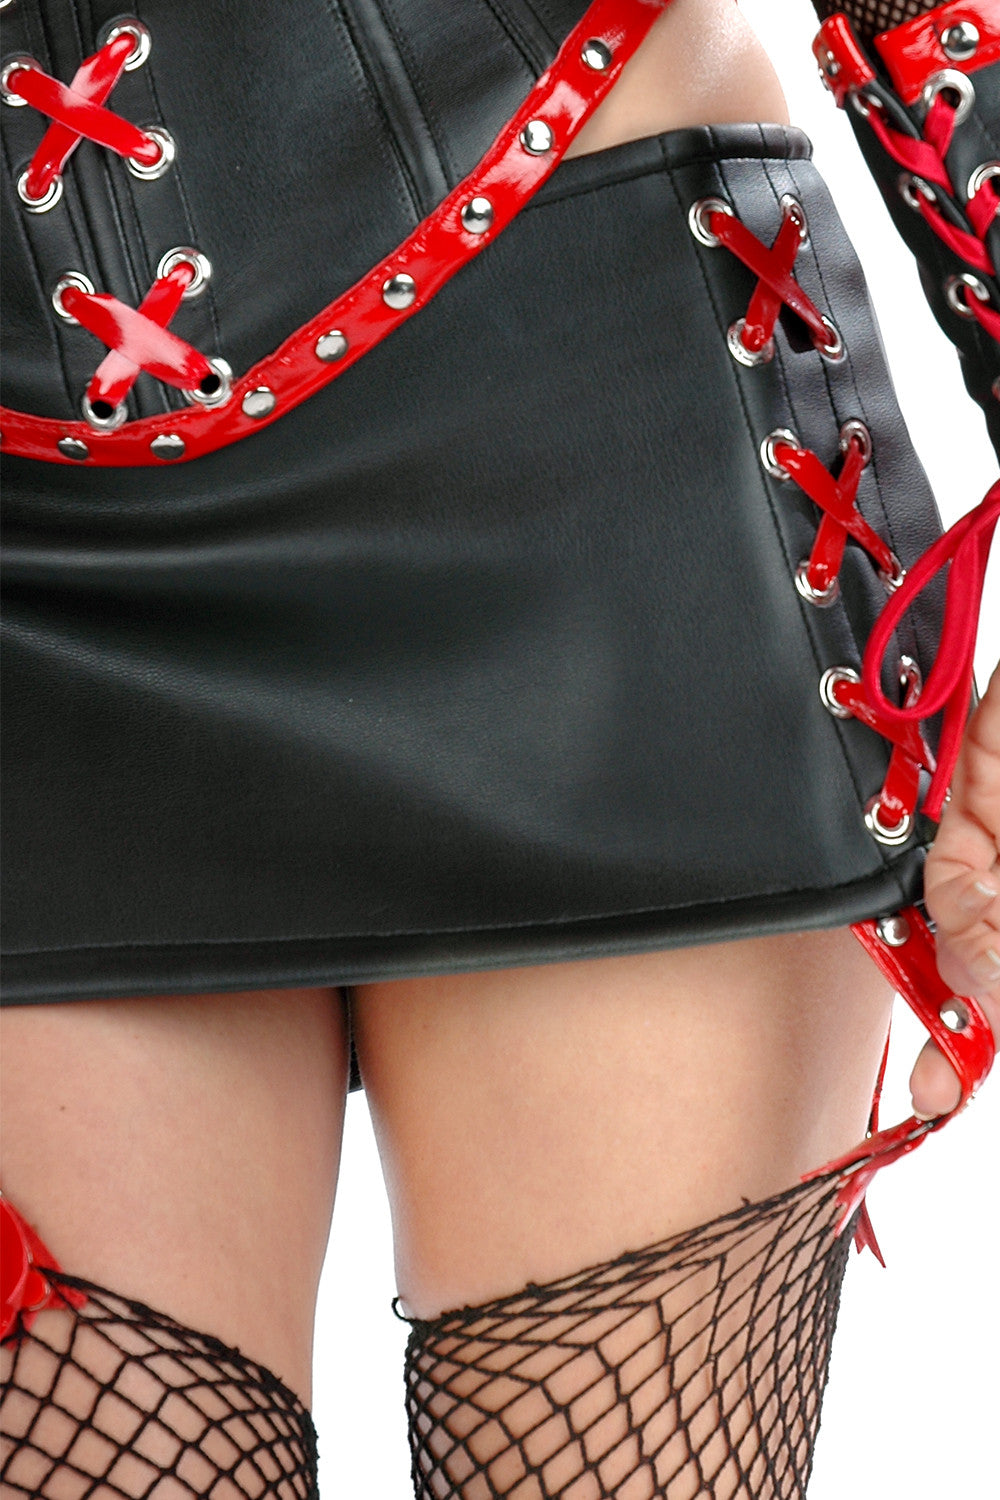 Nurse Napalm Skirt with Garters